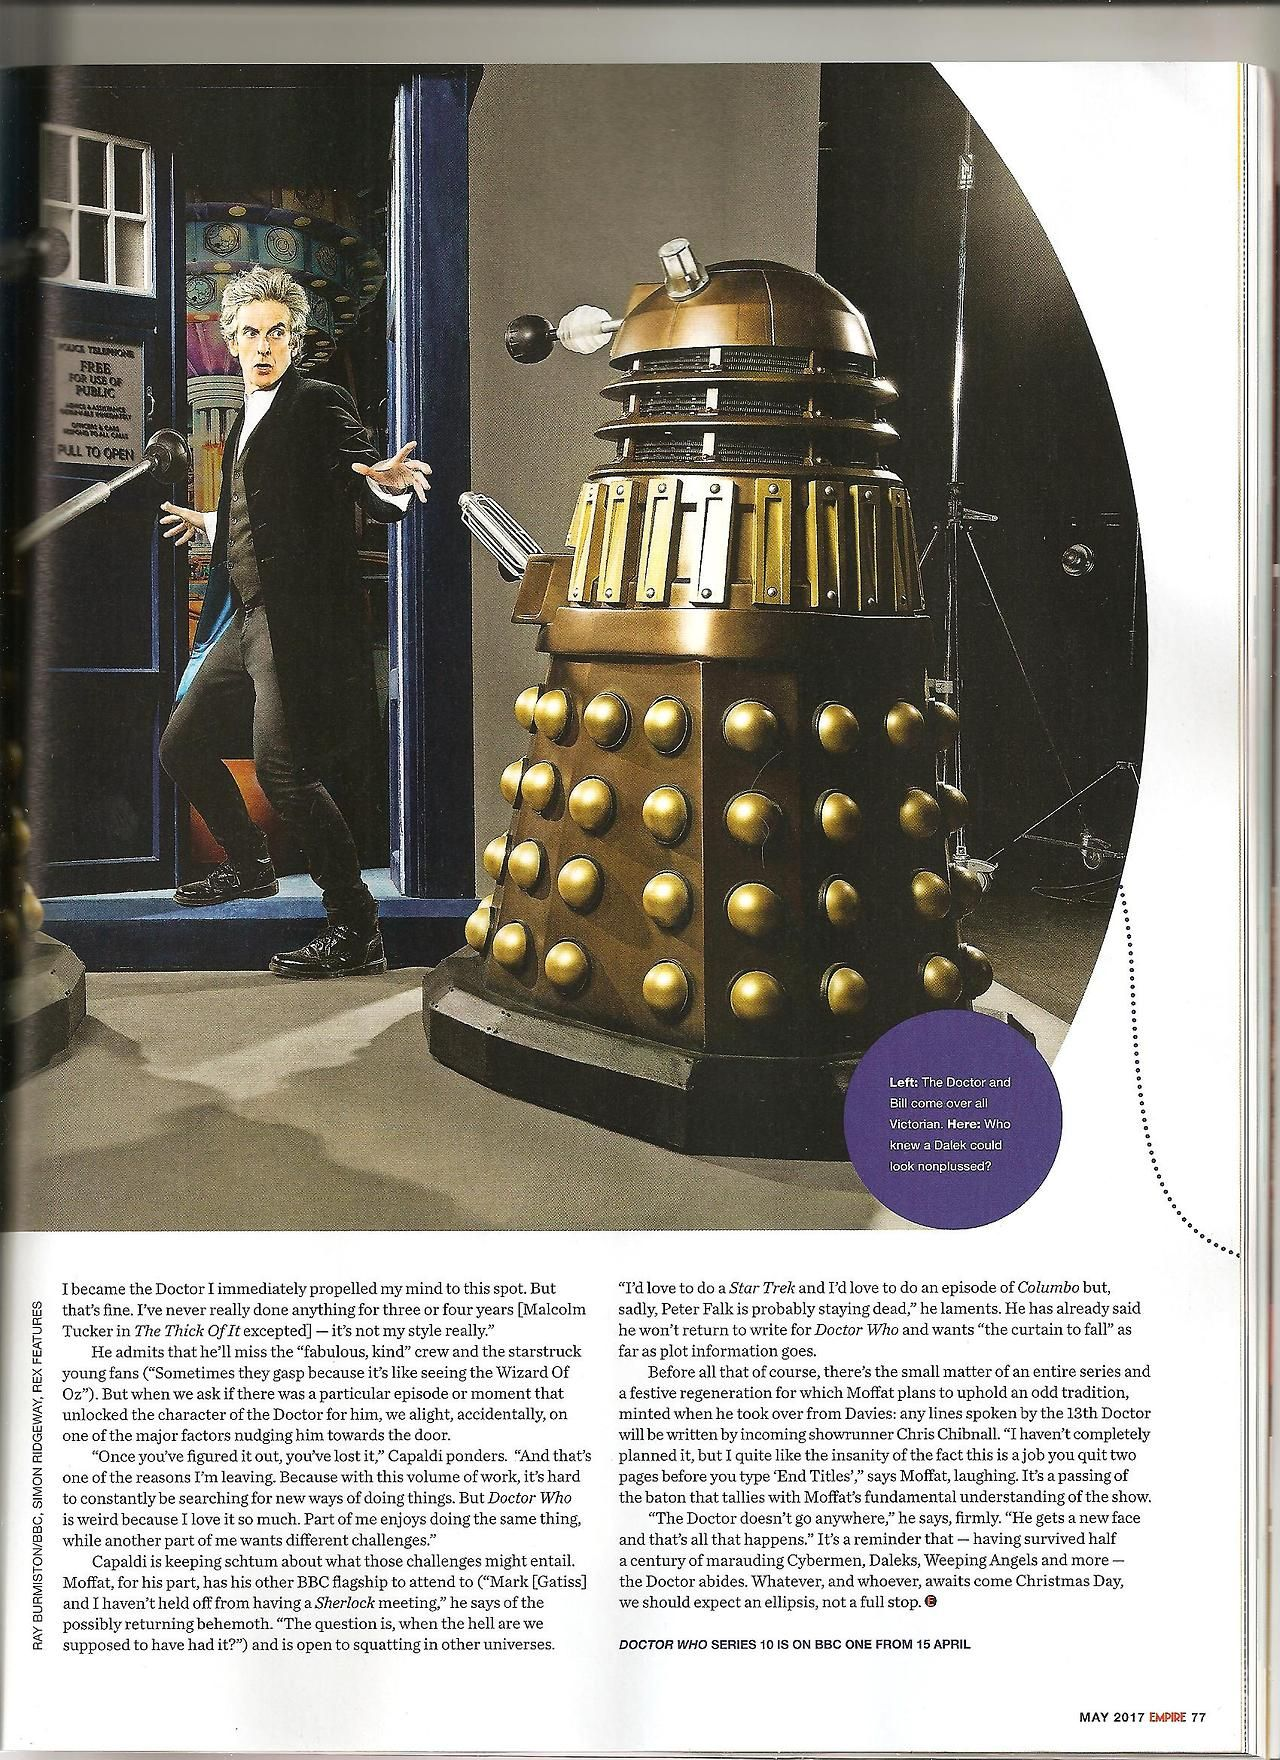 Pages from Empire magazine May 2017